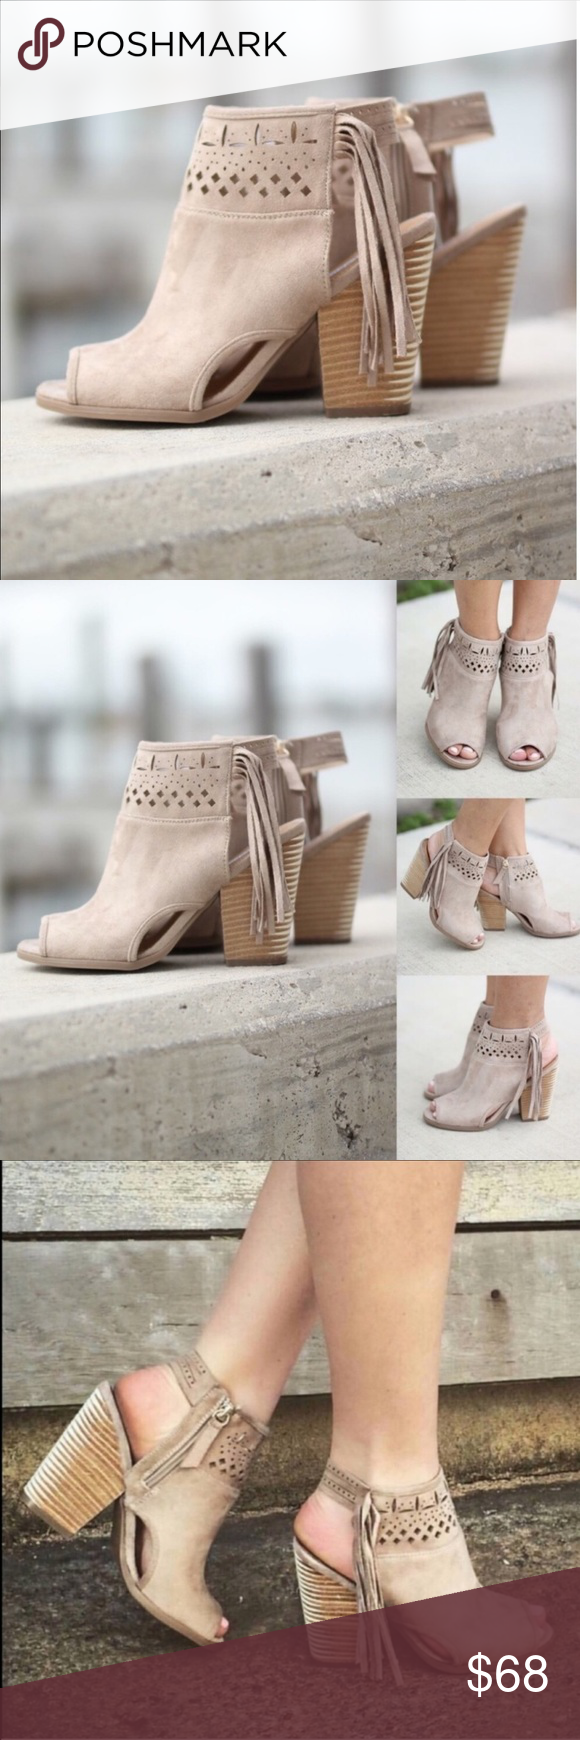 Suede Fringe Peep Toe Ankle Booties am loving these Cream Open Toe Fringe Booties They are simply adorable the perfect booties for any occasion The cream color and fringe...